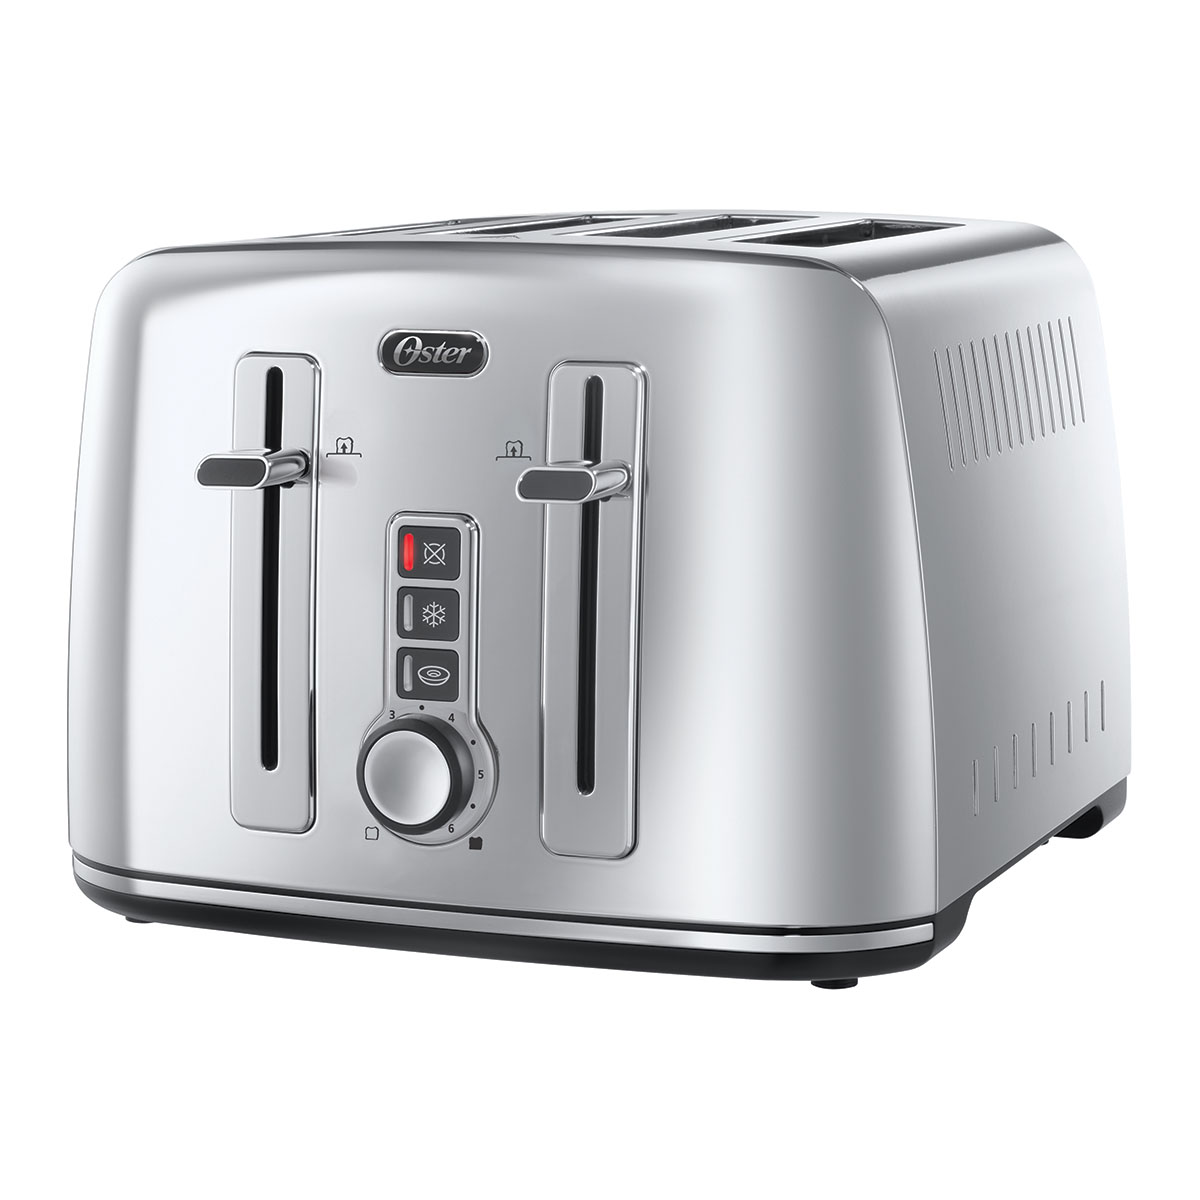 Oster 4 Slice Extra Tall Toaster Premium Polished